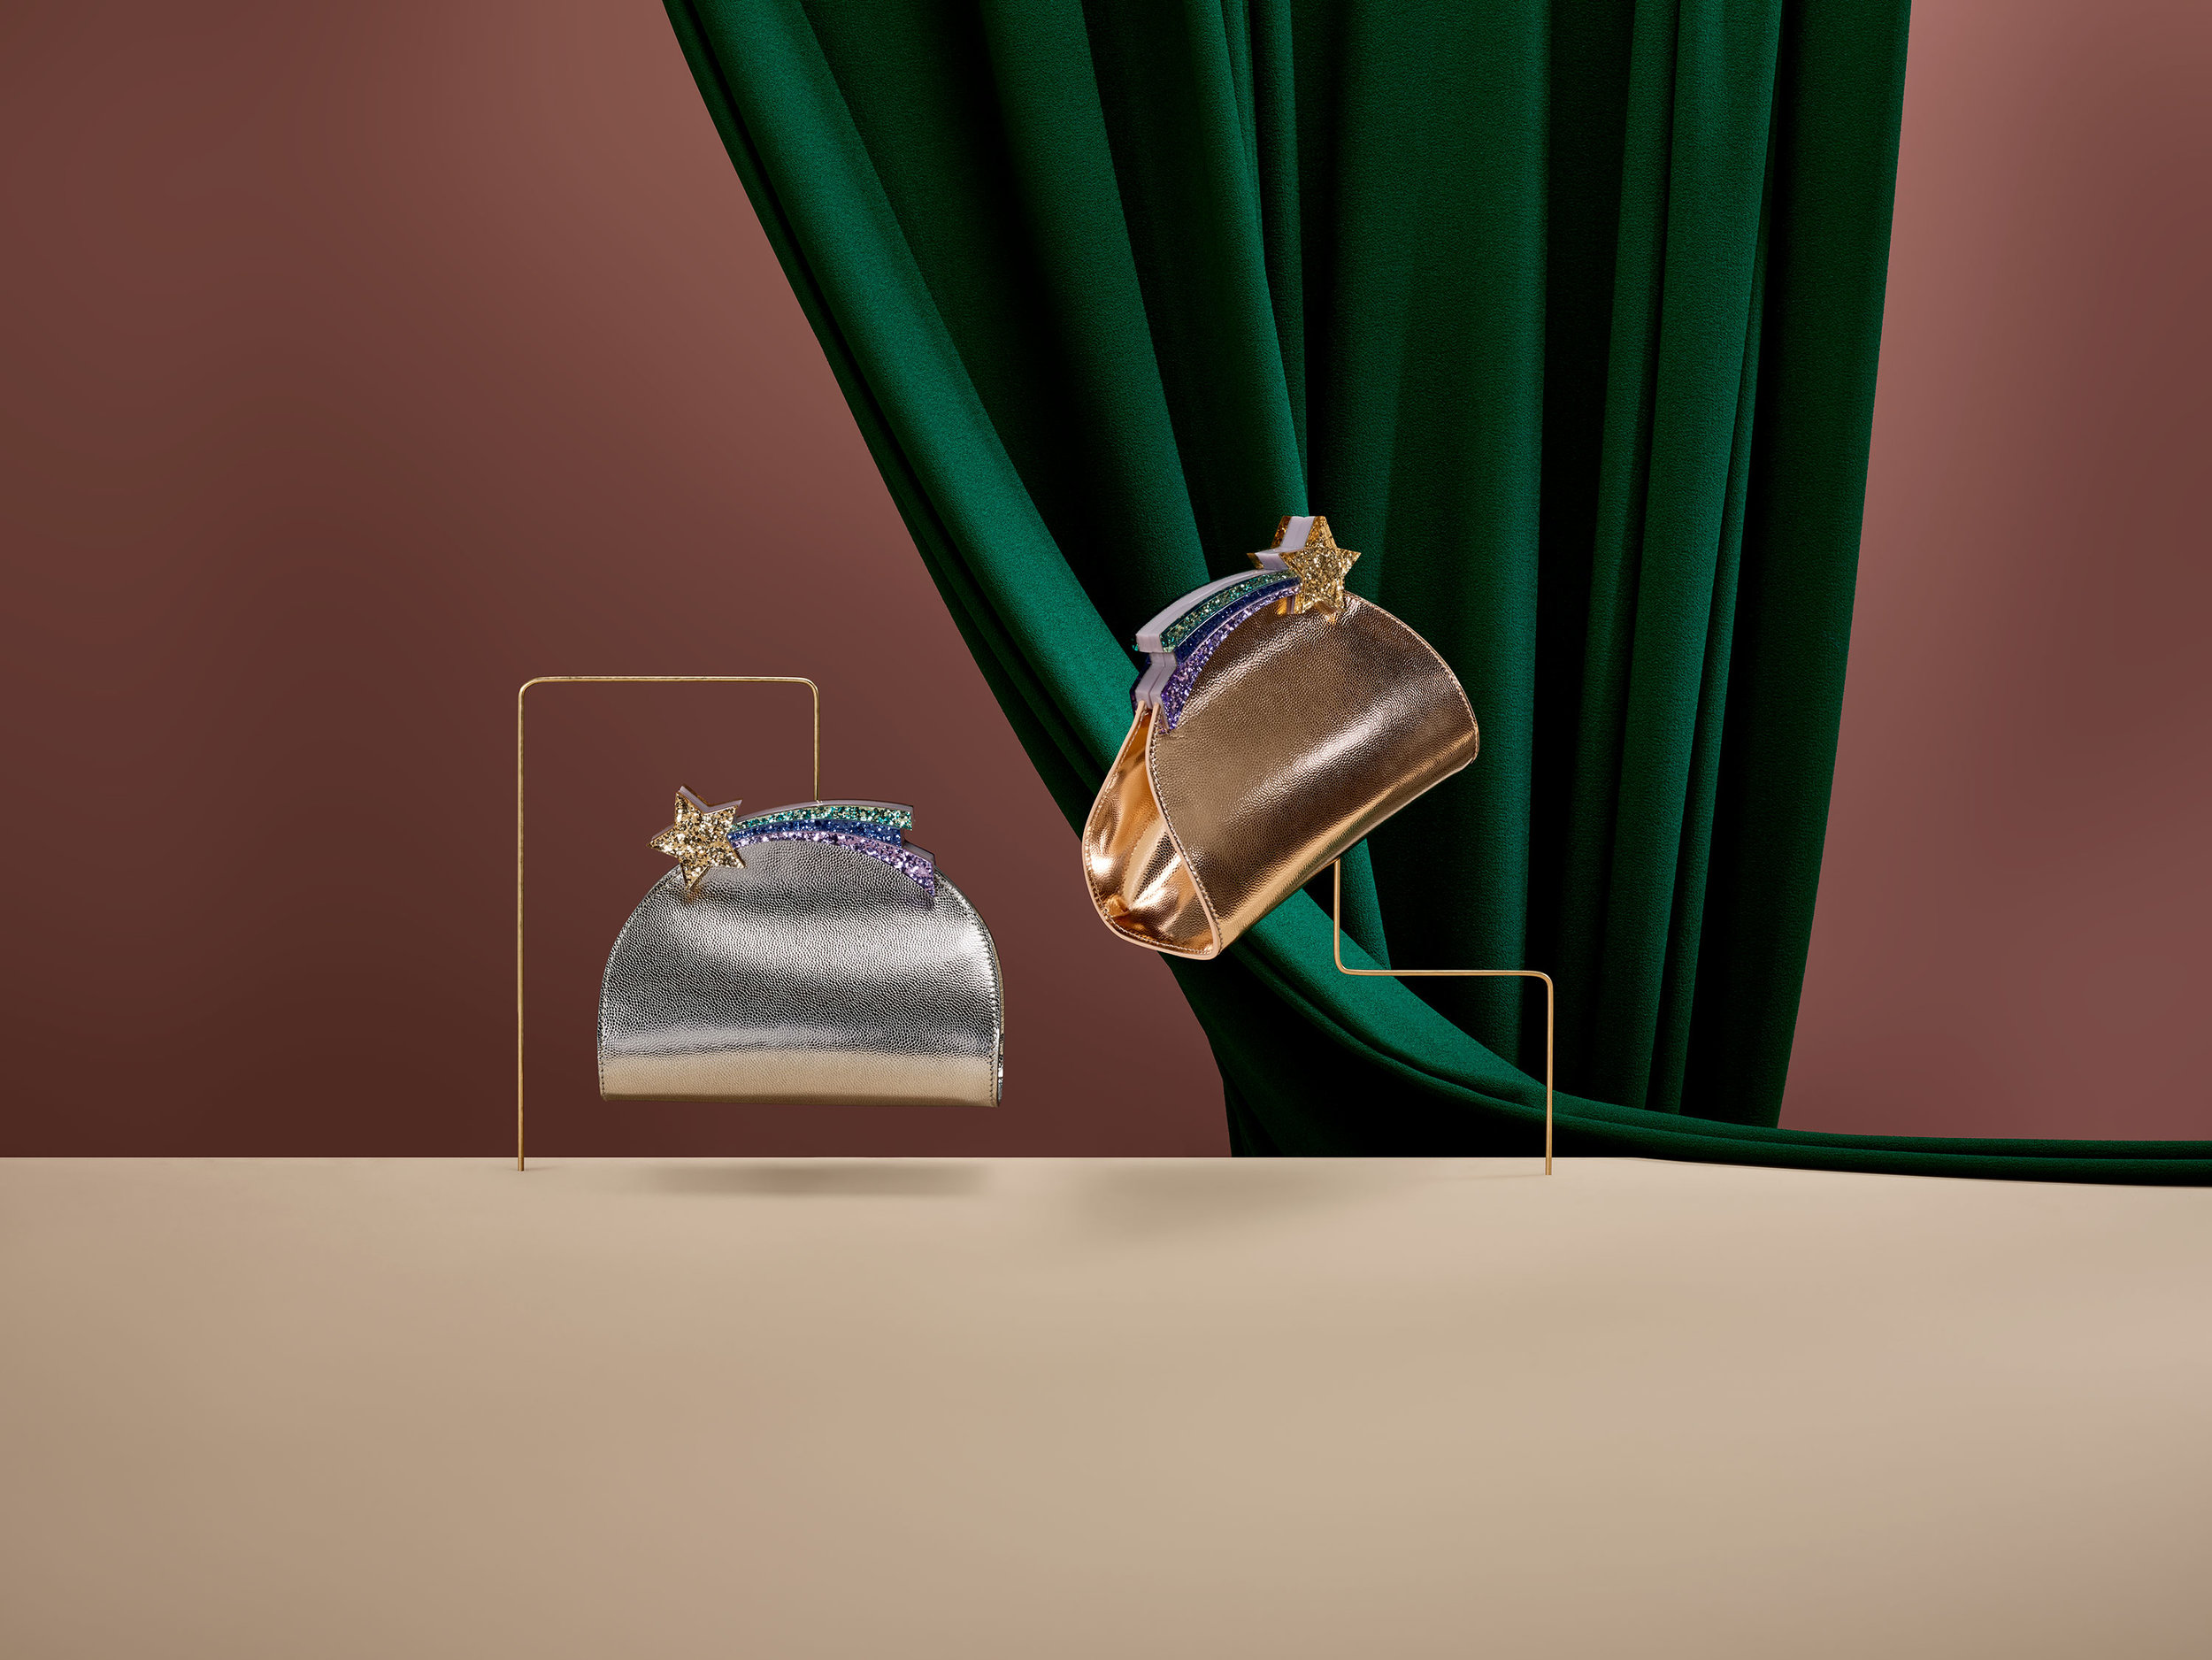 APPROACH_RETOUCH_STILL_LIFE_MING_RAY_AW19_8.jpg